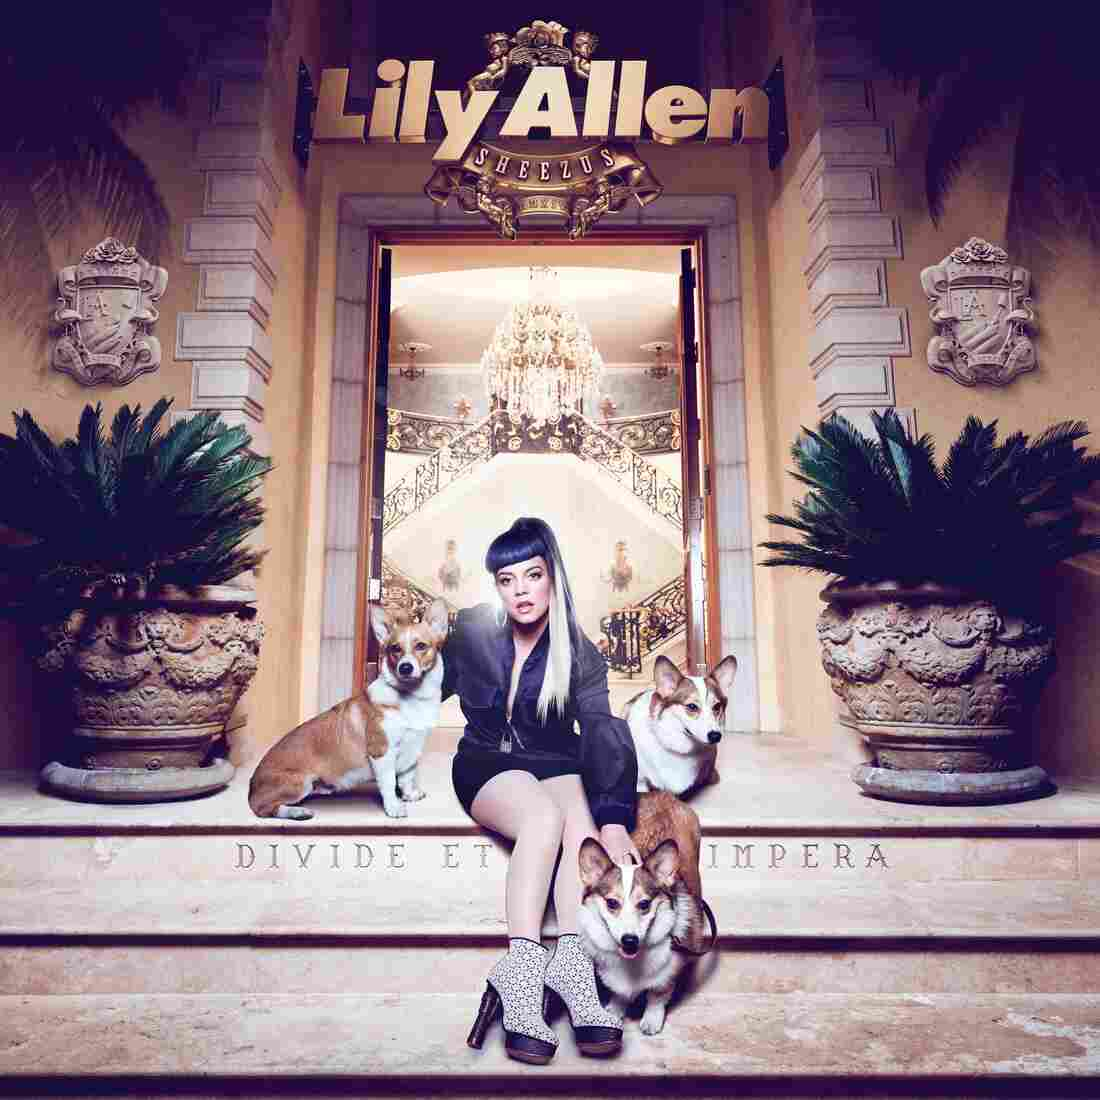 The album cover for Lily Allen's Sheezus goes after multiple targets, including Kanye West (in the album's title) and Queen Elizabeth II (the corgis).